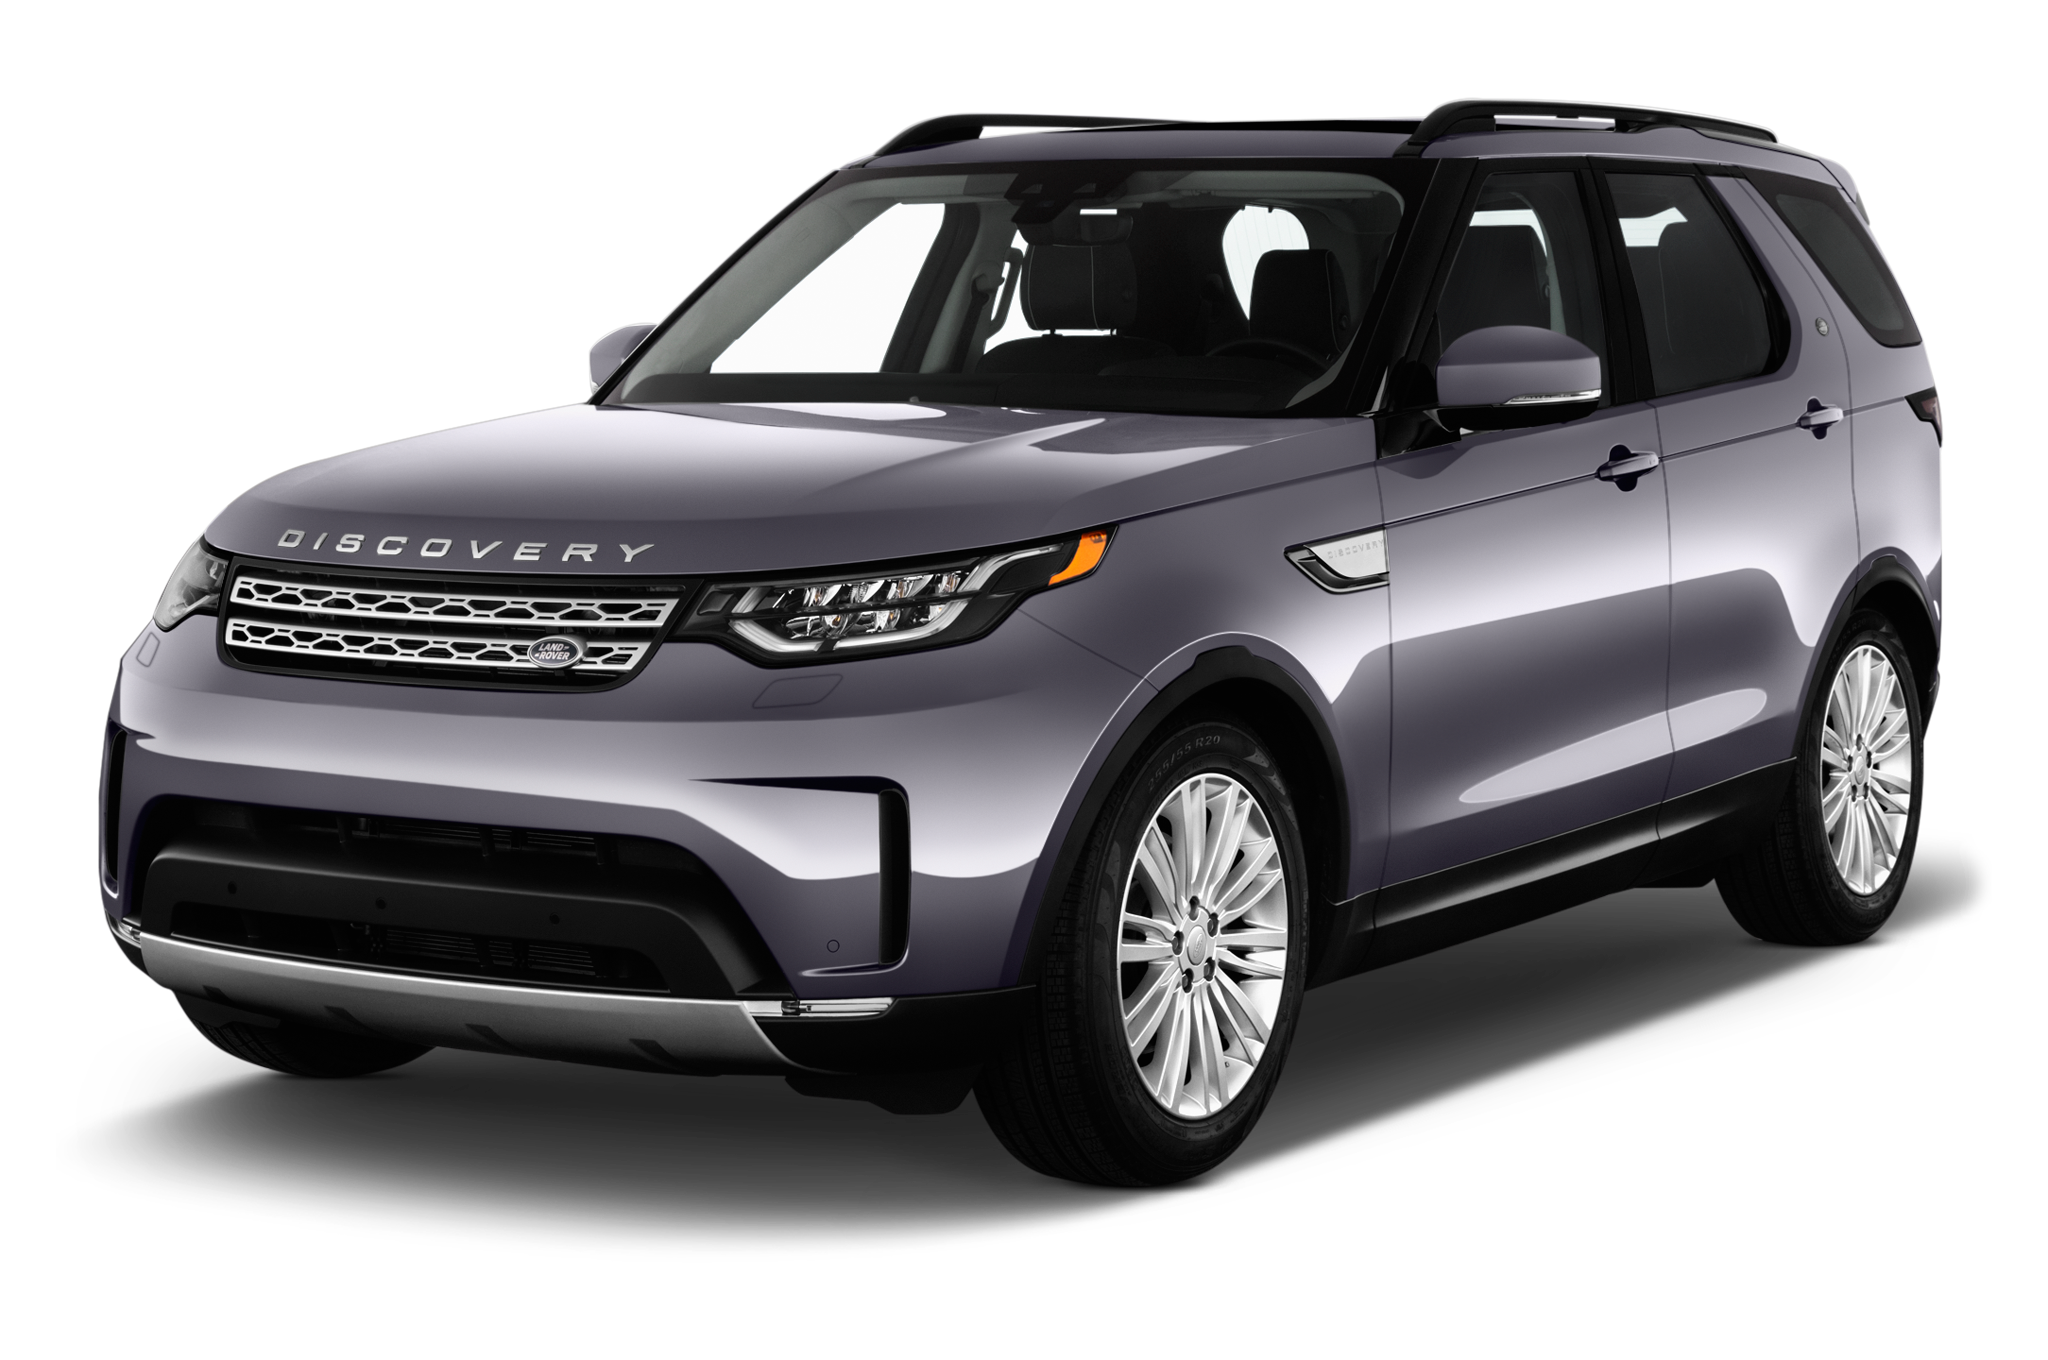 2017 Land Rover Discovery Reviews.